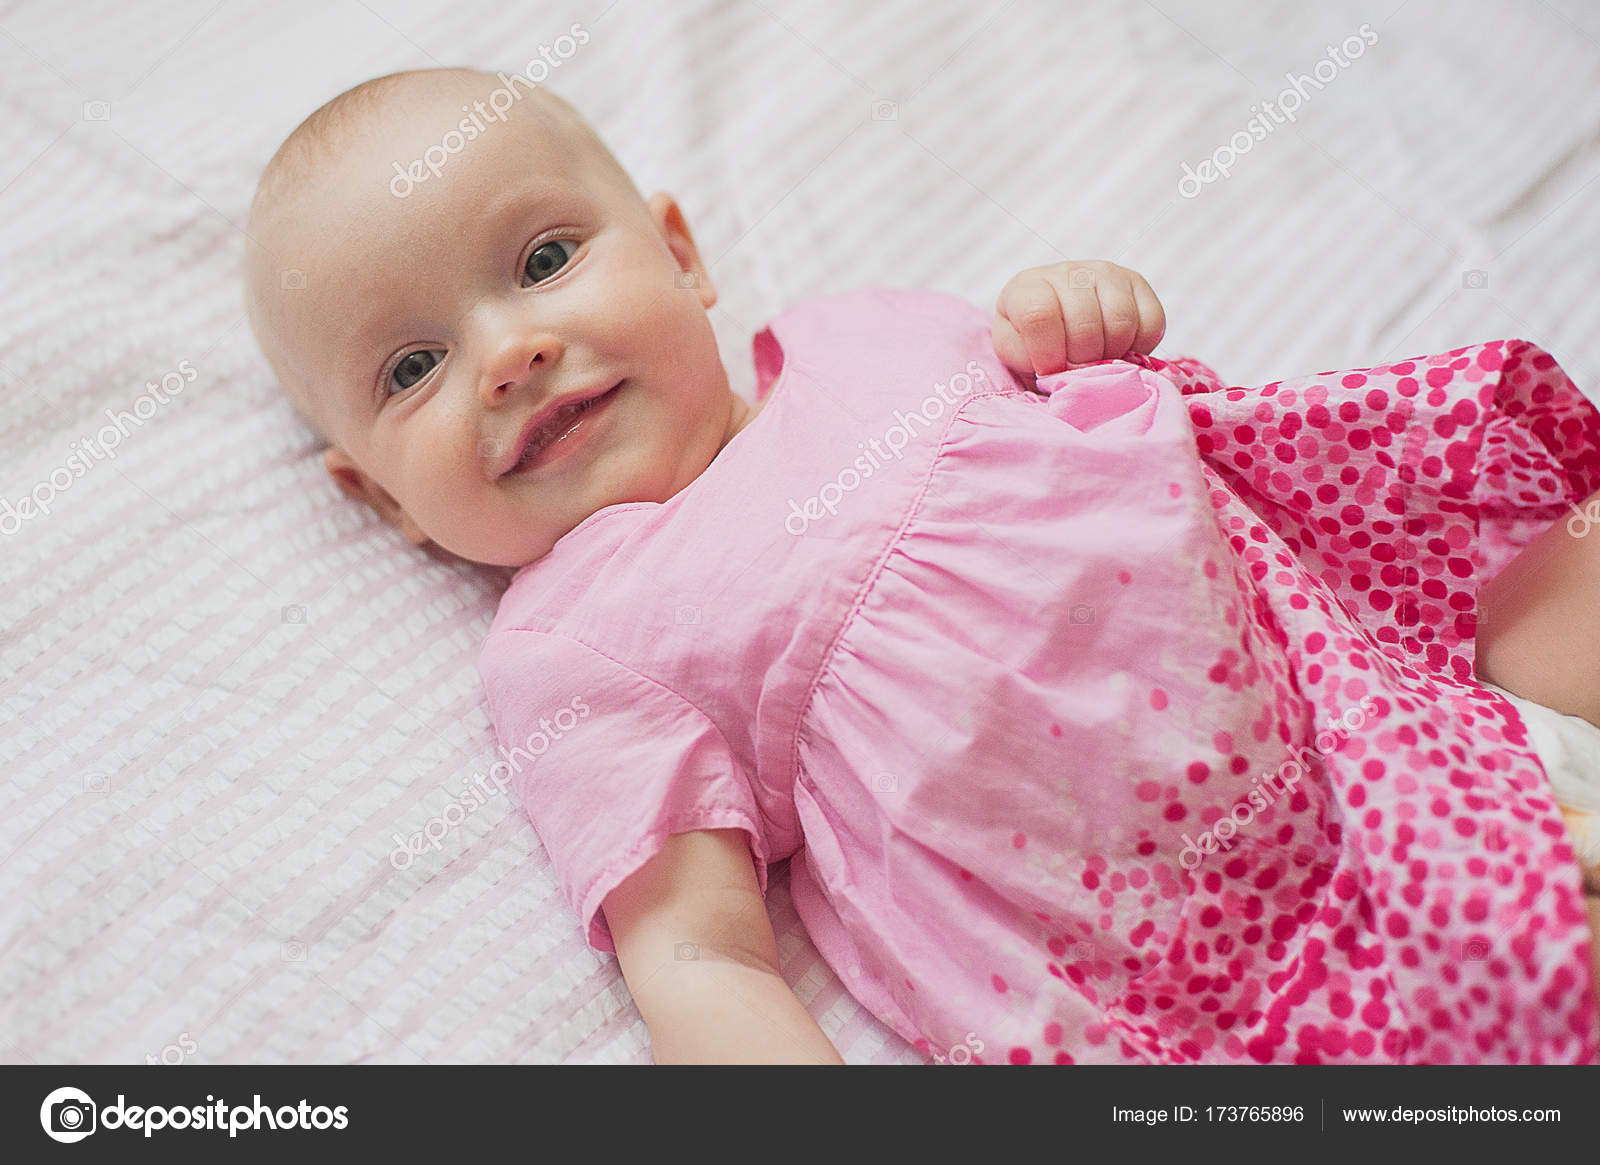 789fdcf36 Cute baby girl in pink dress lies on white backgroun. Close-up ...